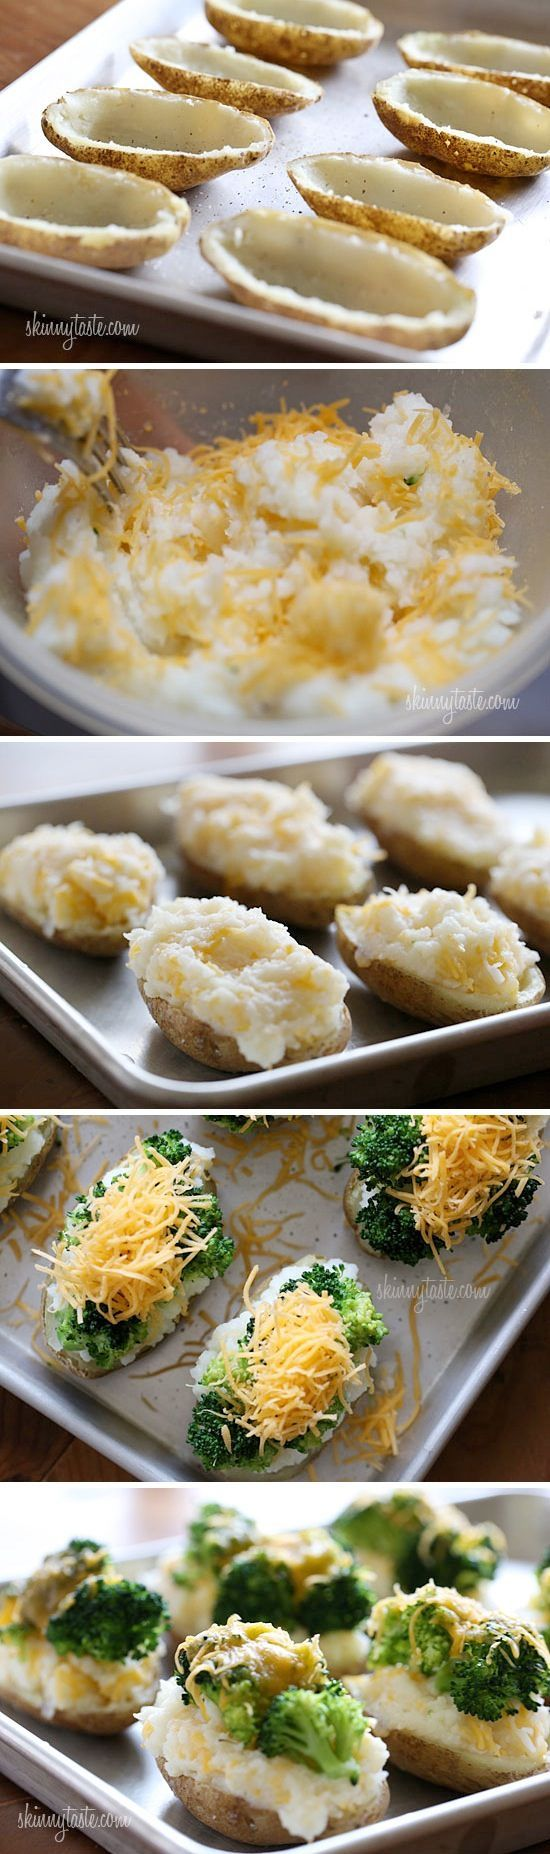 Broccoli Cheese Baked Potatoes | Recipe By Photo